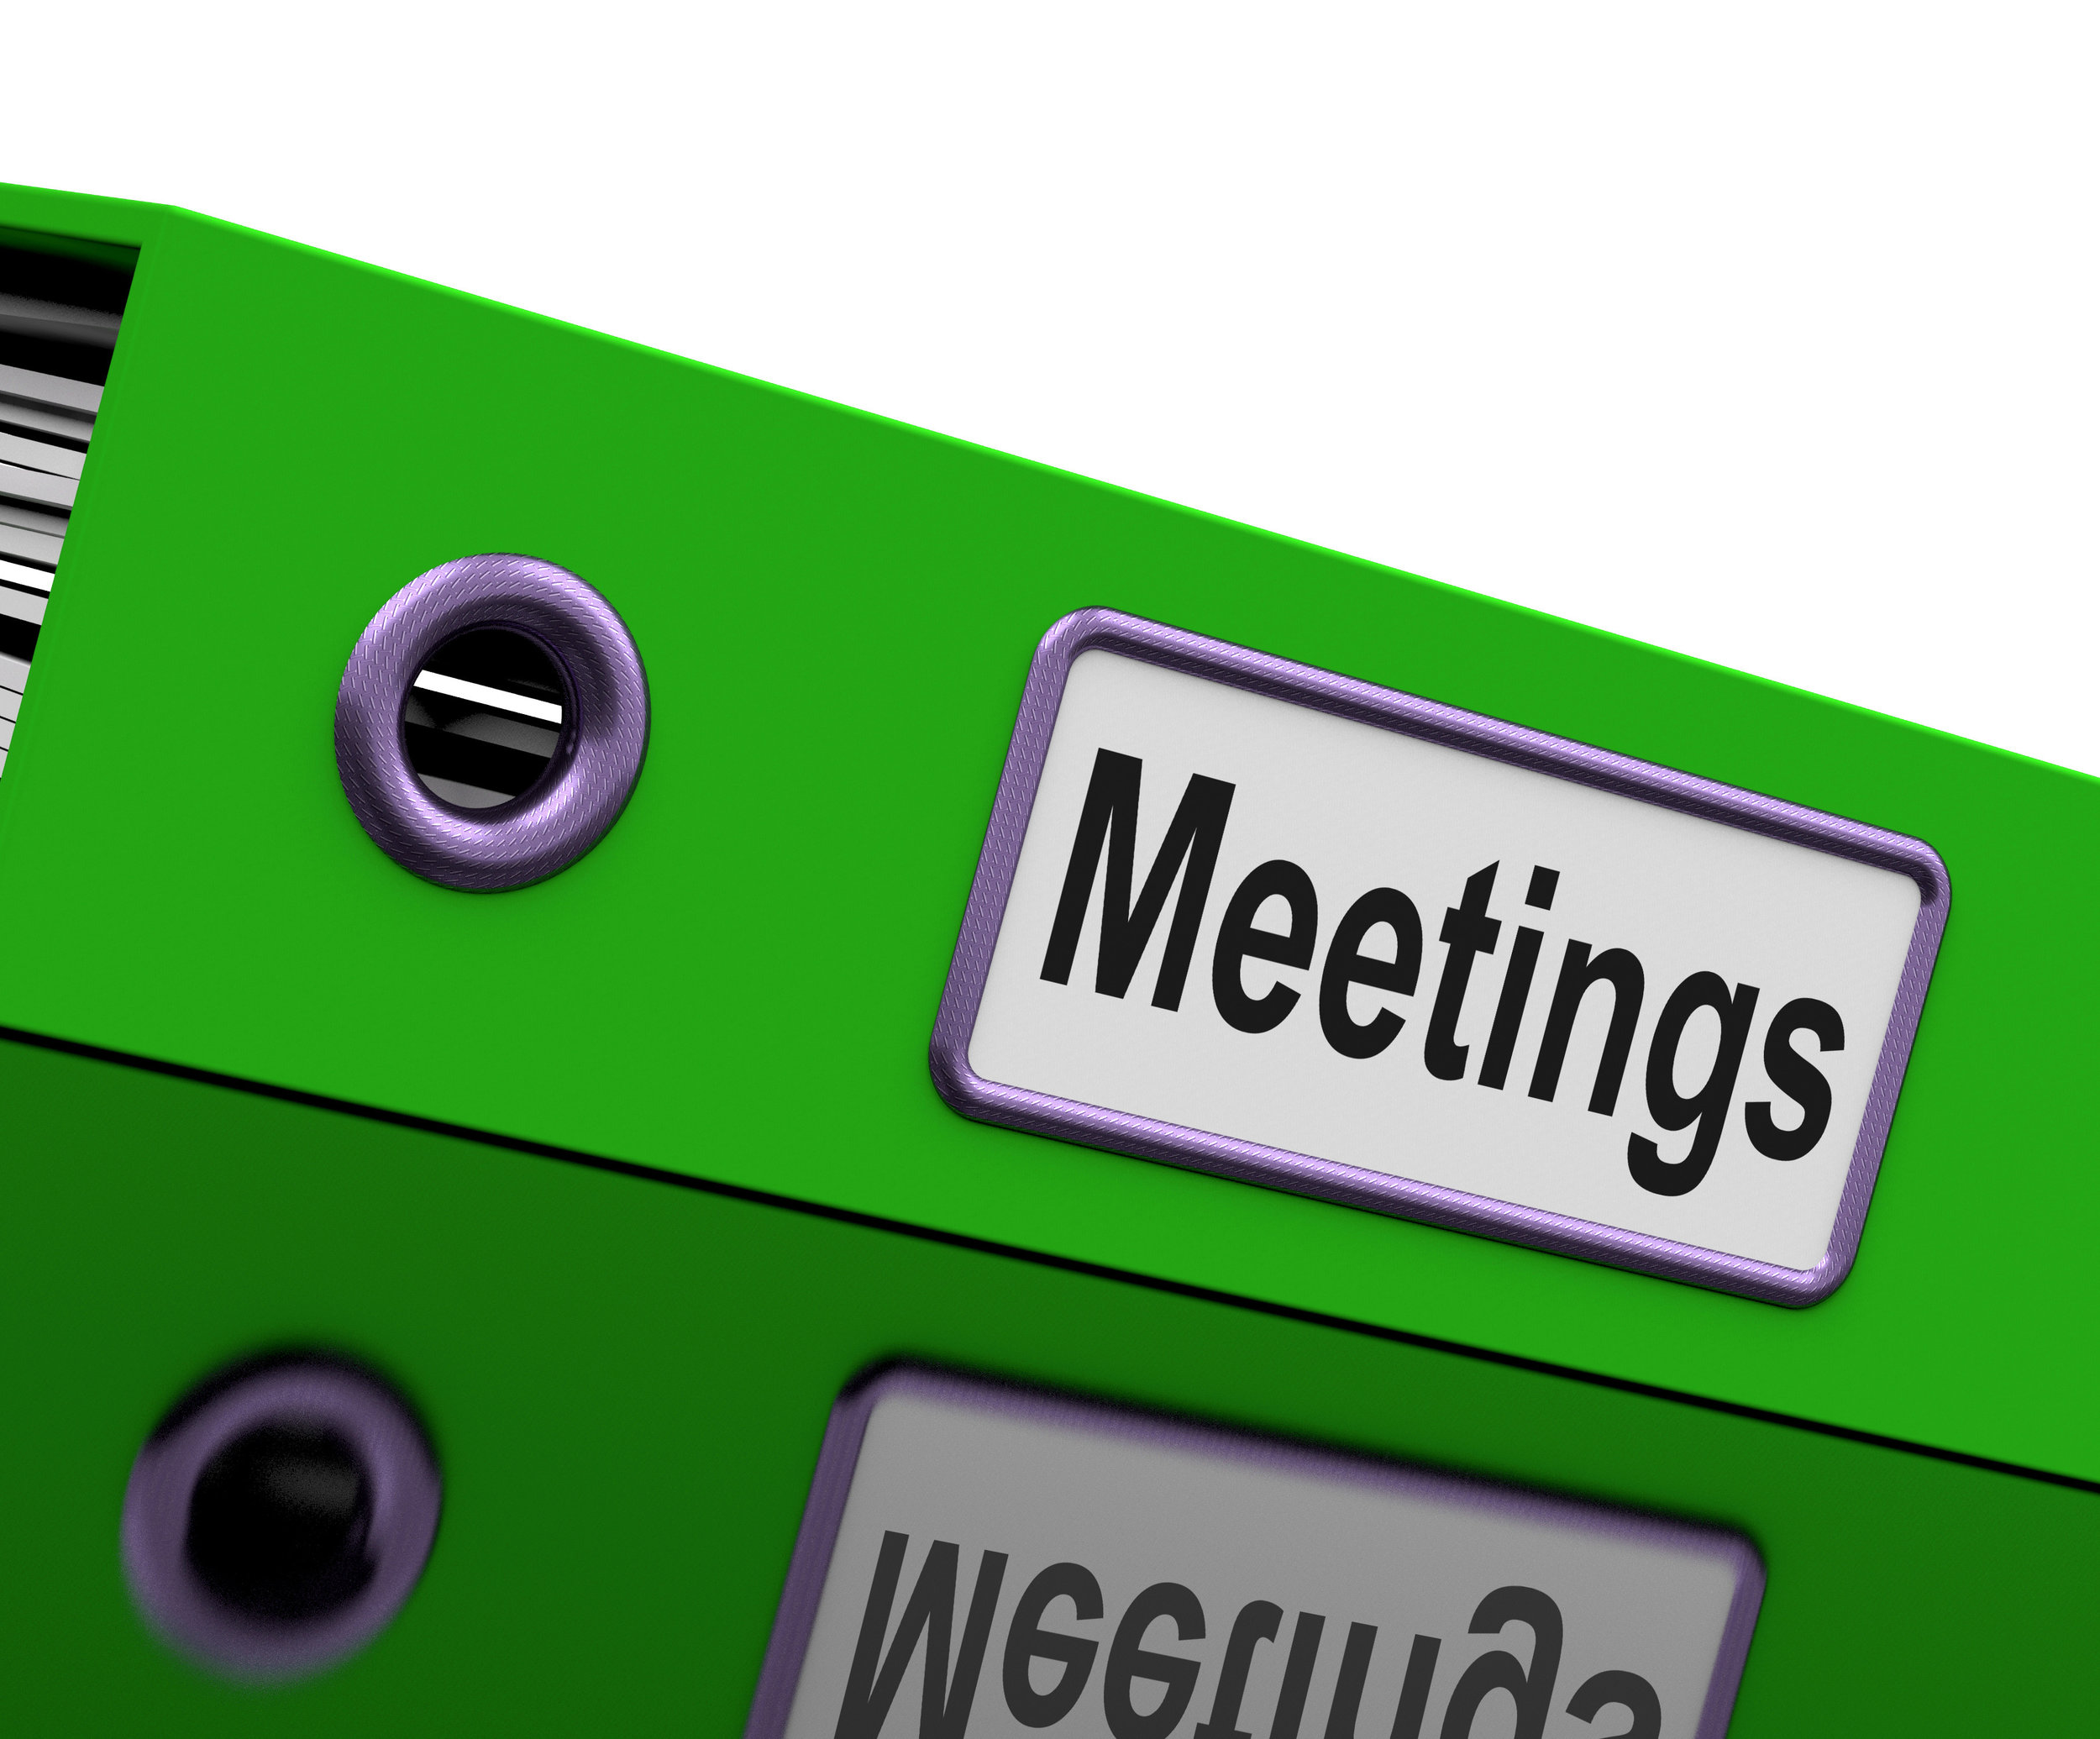 meetings-file-to-show-minutes-of-company-discussion_zyoZSVvd.jpg